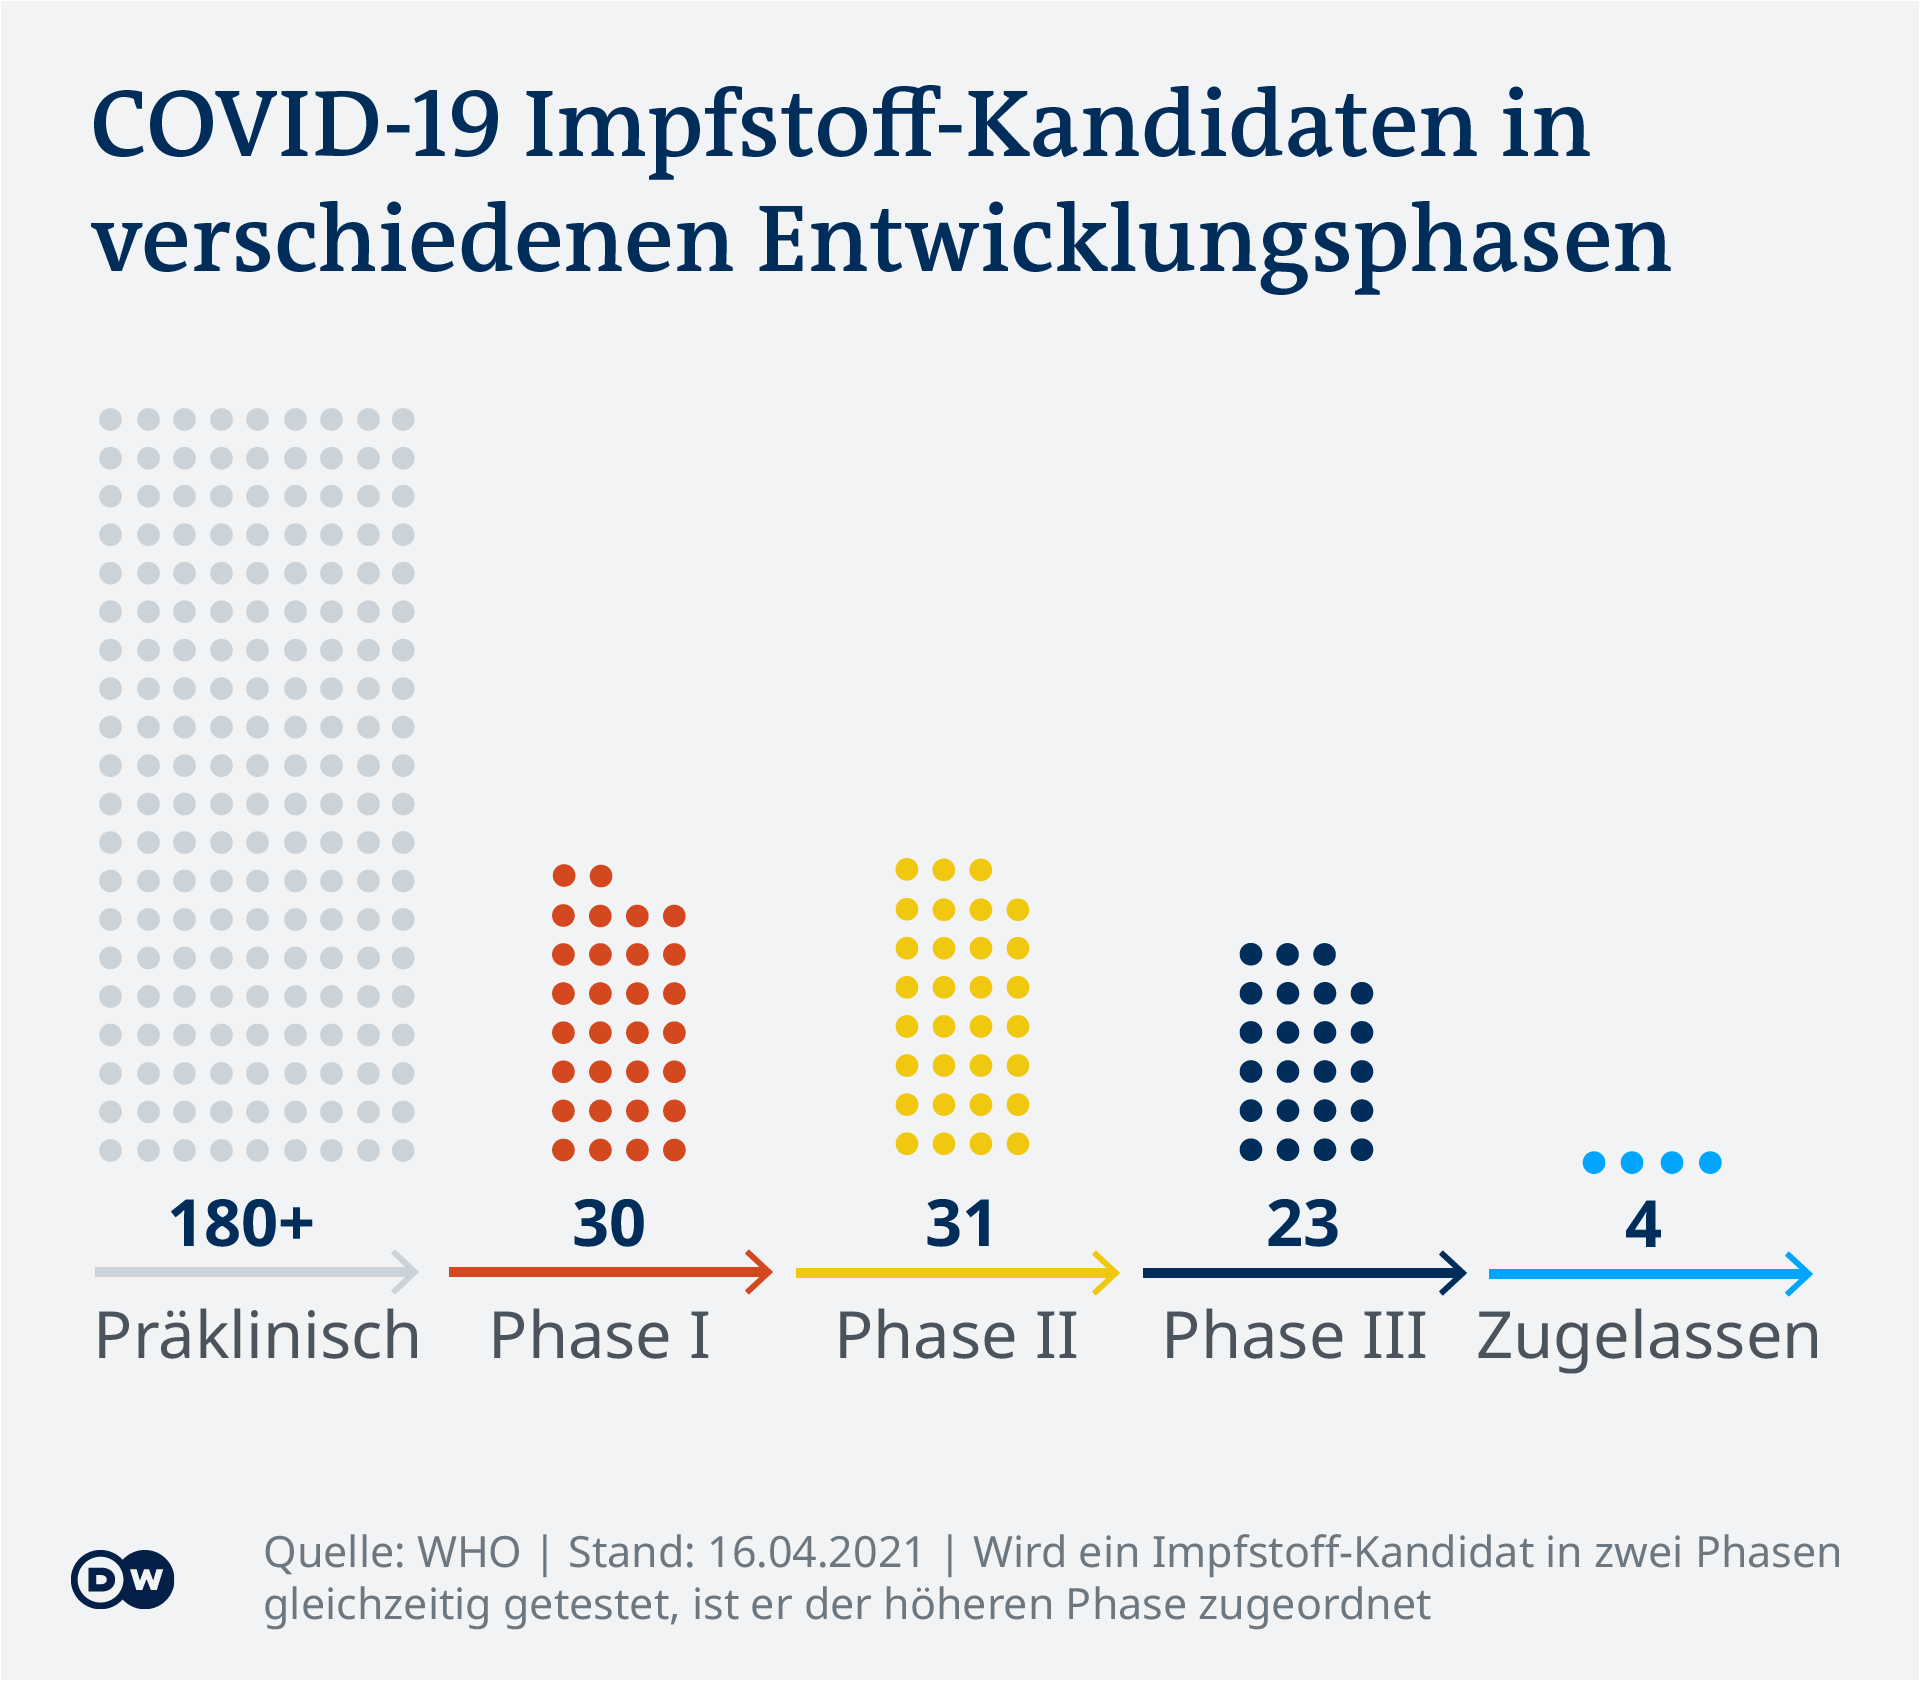 Data visualization - COVID-19 vaccine tracker - Phasen - Update April 16, 2021 - German